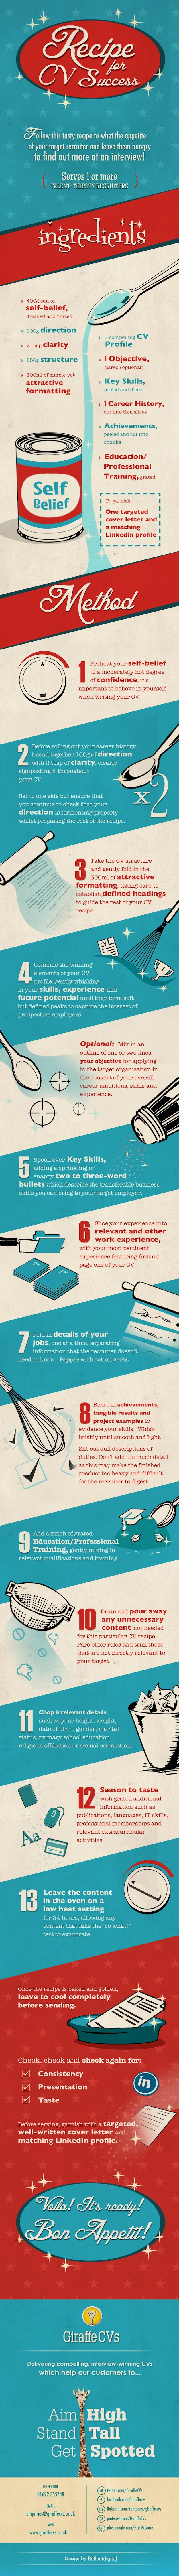 Recipe for Success Infographic